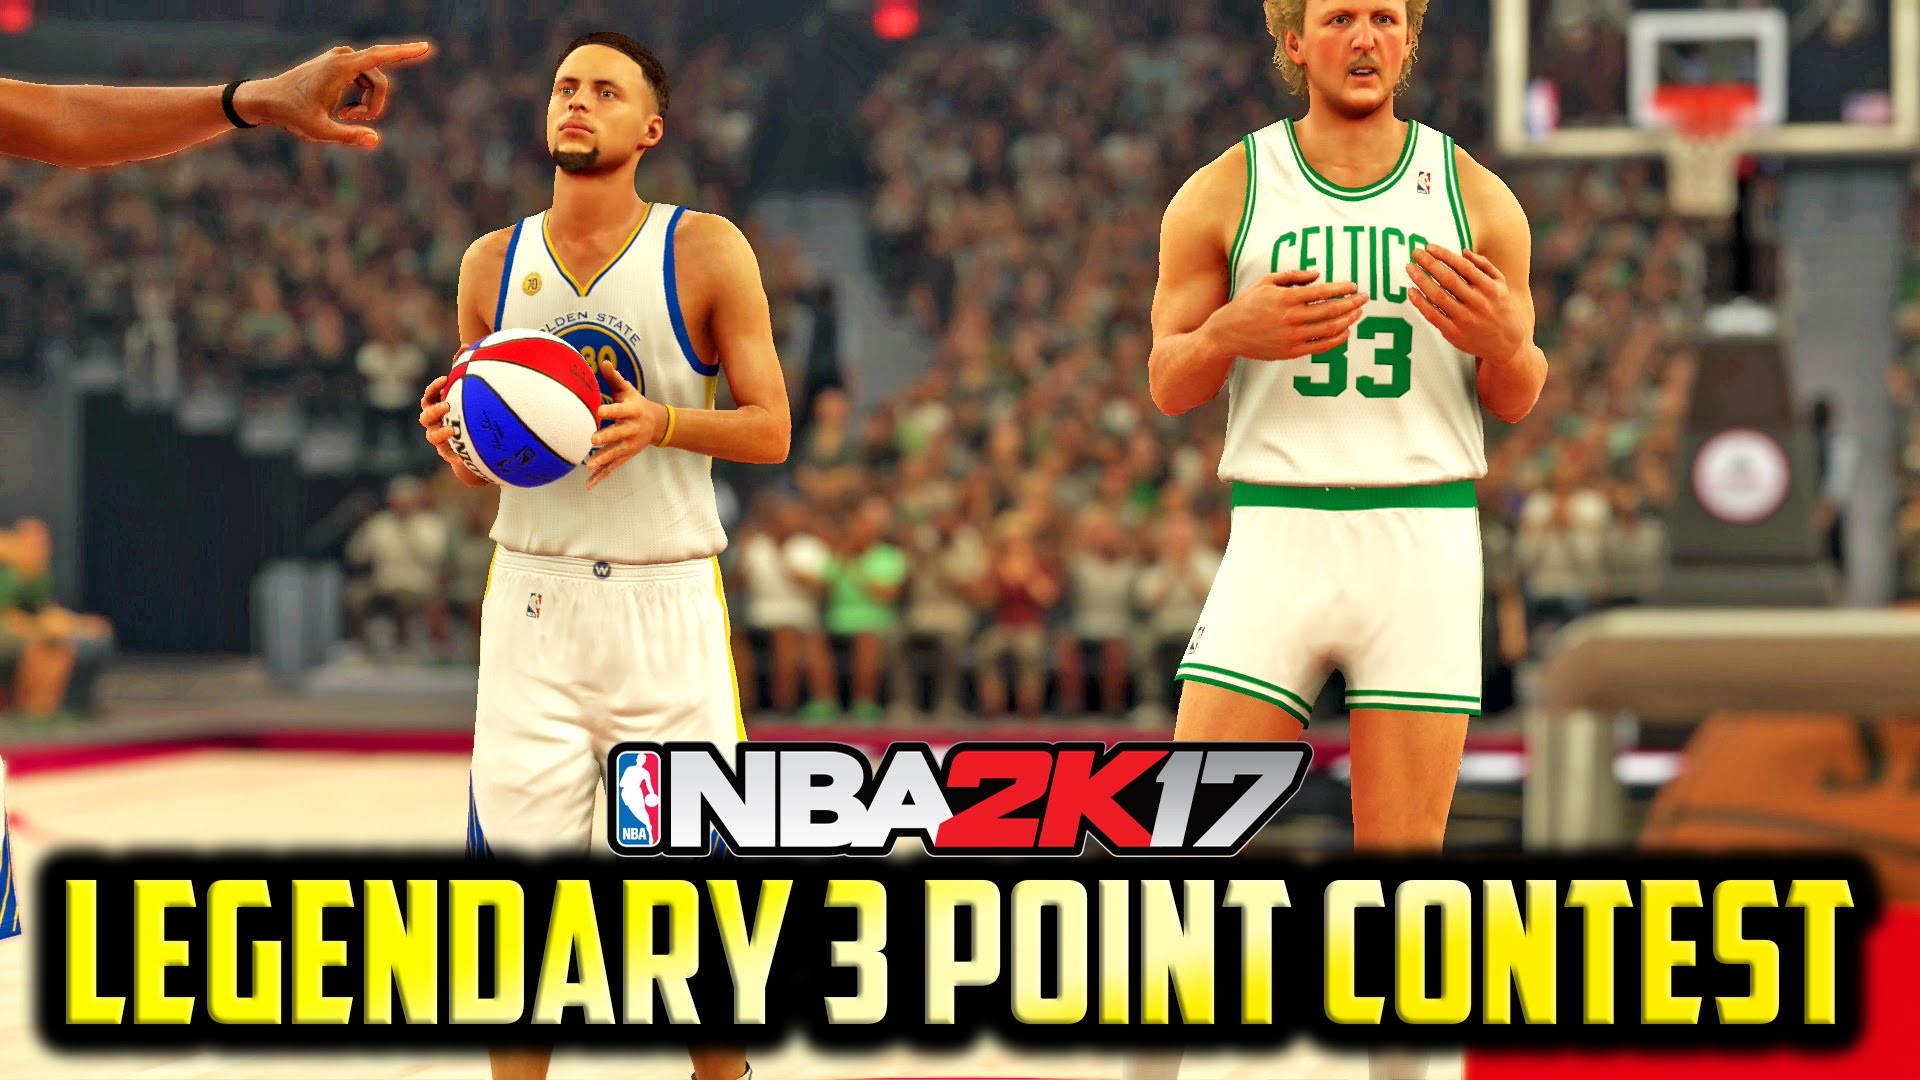 1920x1080 NBA 2K17 - Stephen Curry vs Larry Bird vs Kevin Durant (Legendary 3 Point  Contest!!) - YouTube